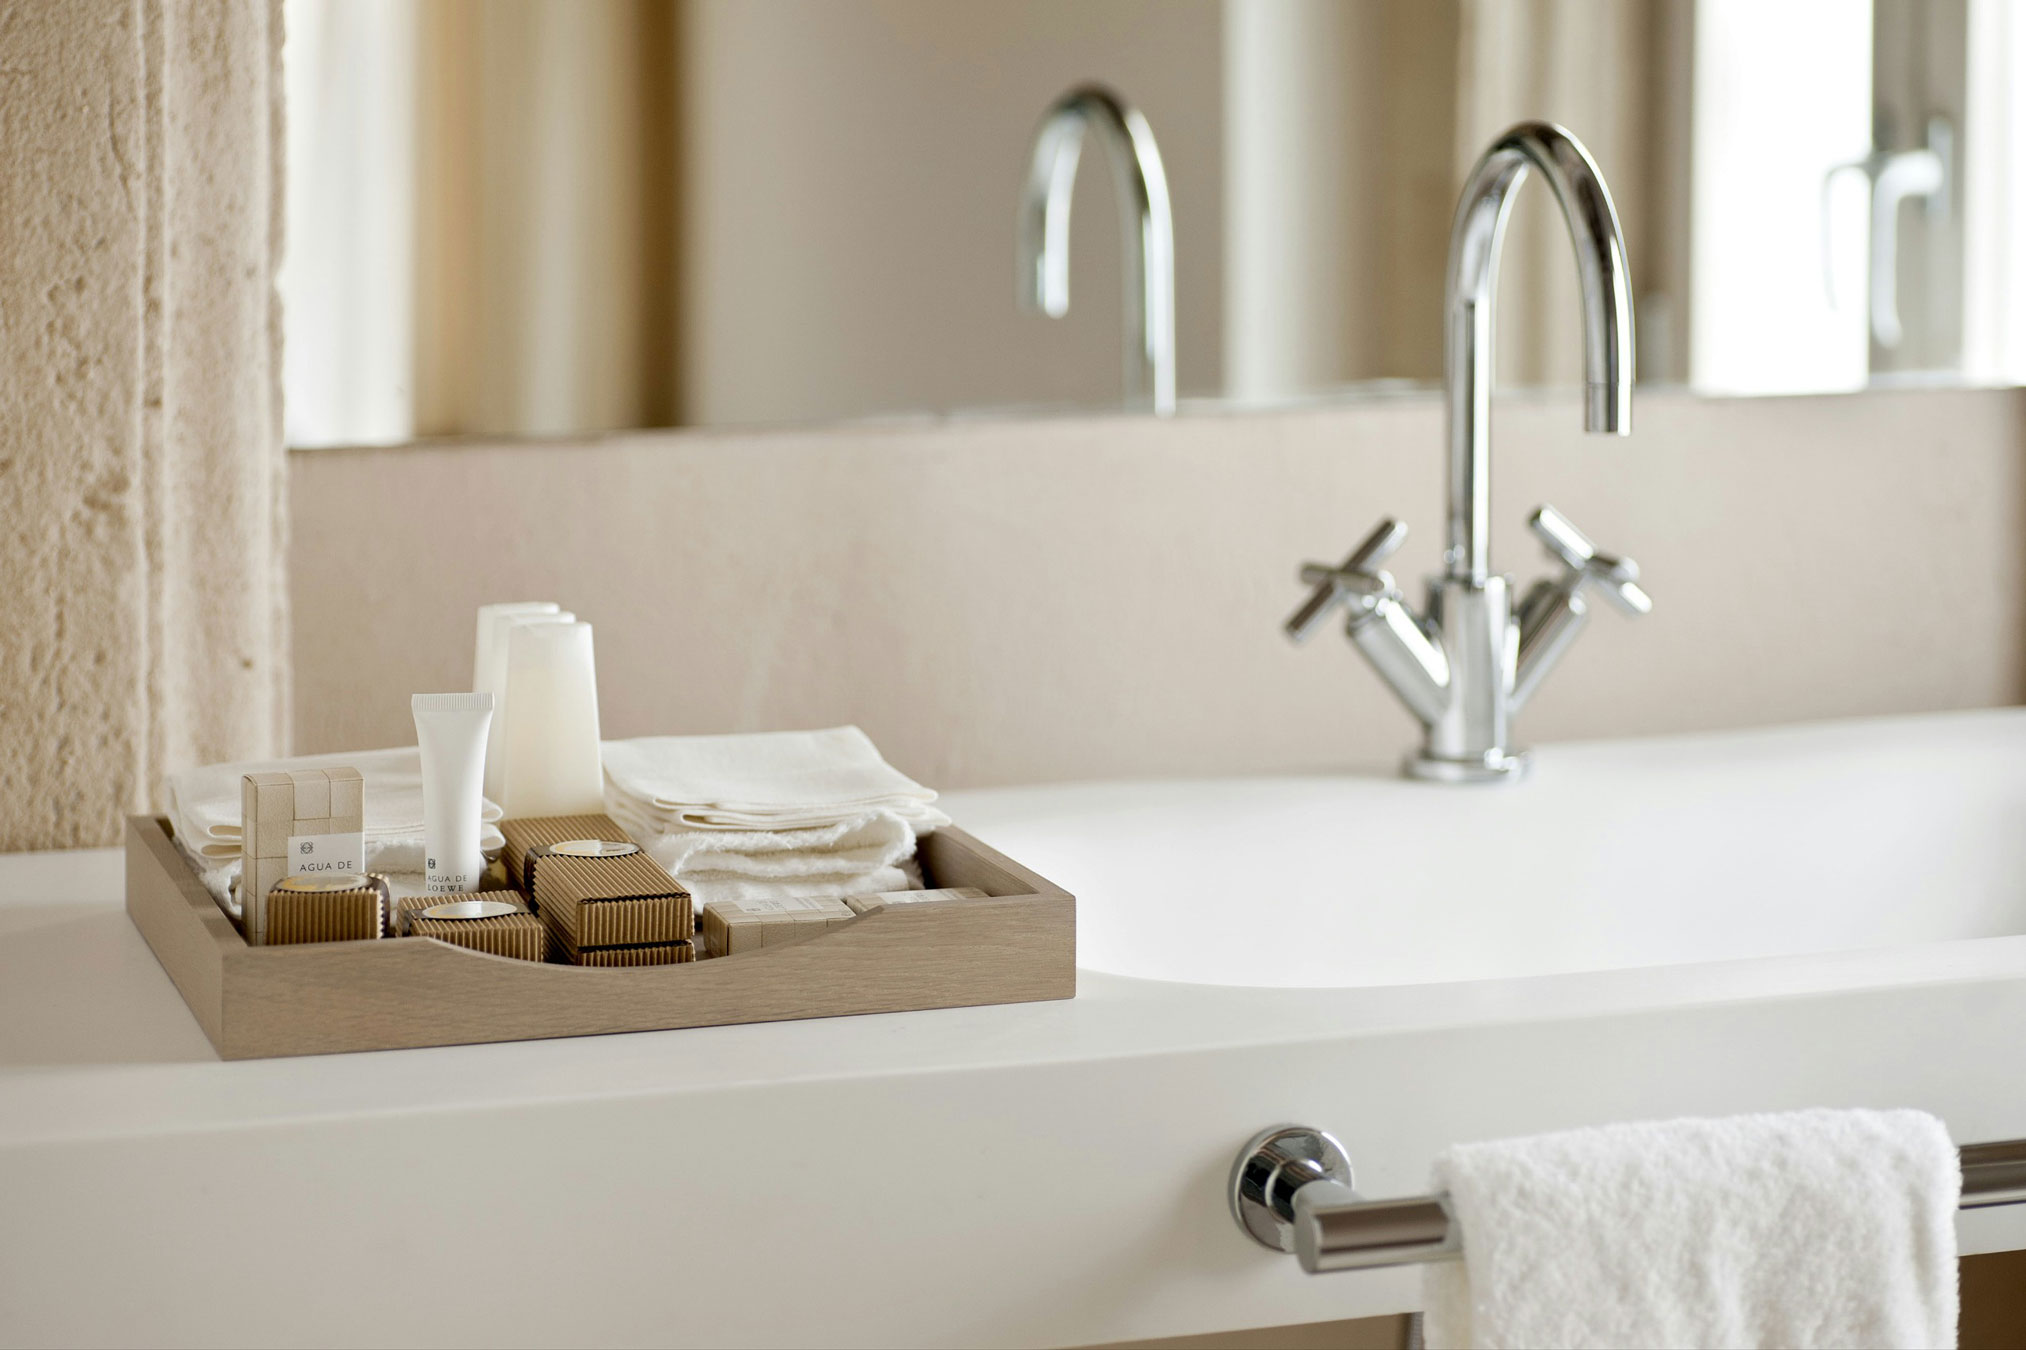 Decorative Trays For Bathroom